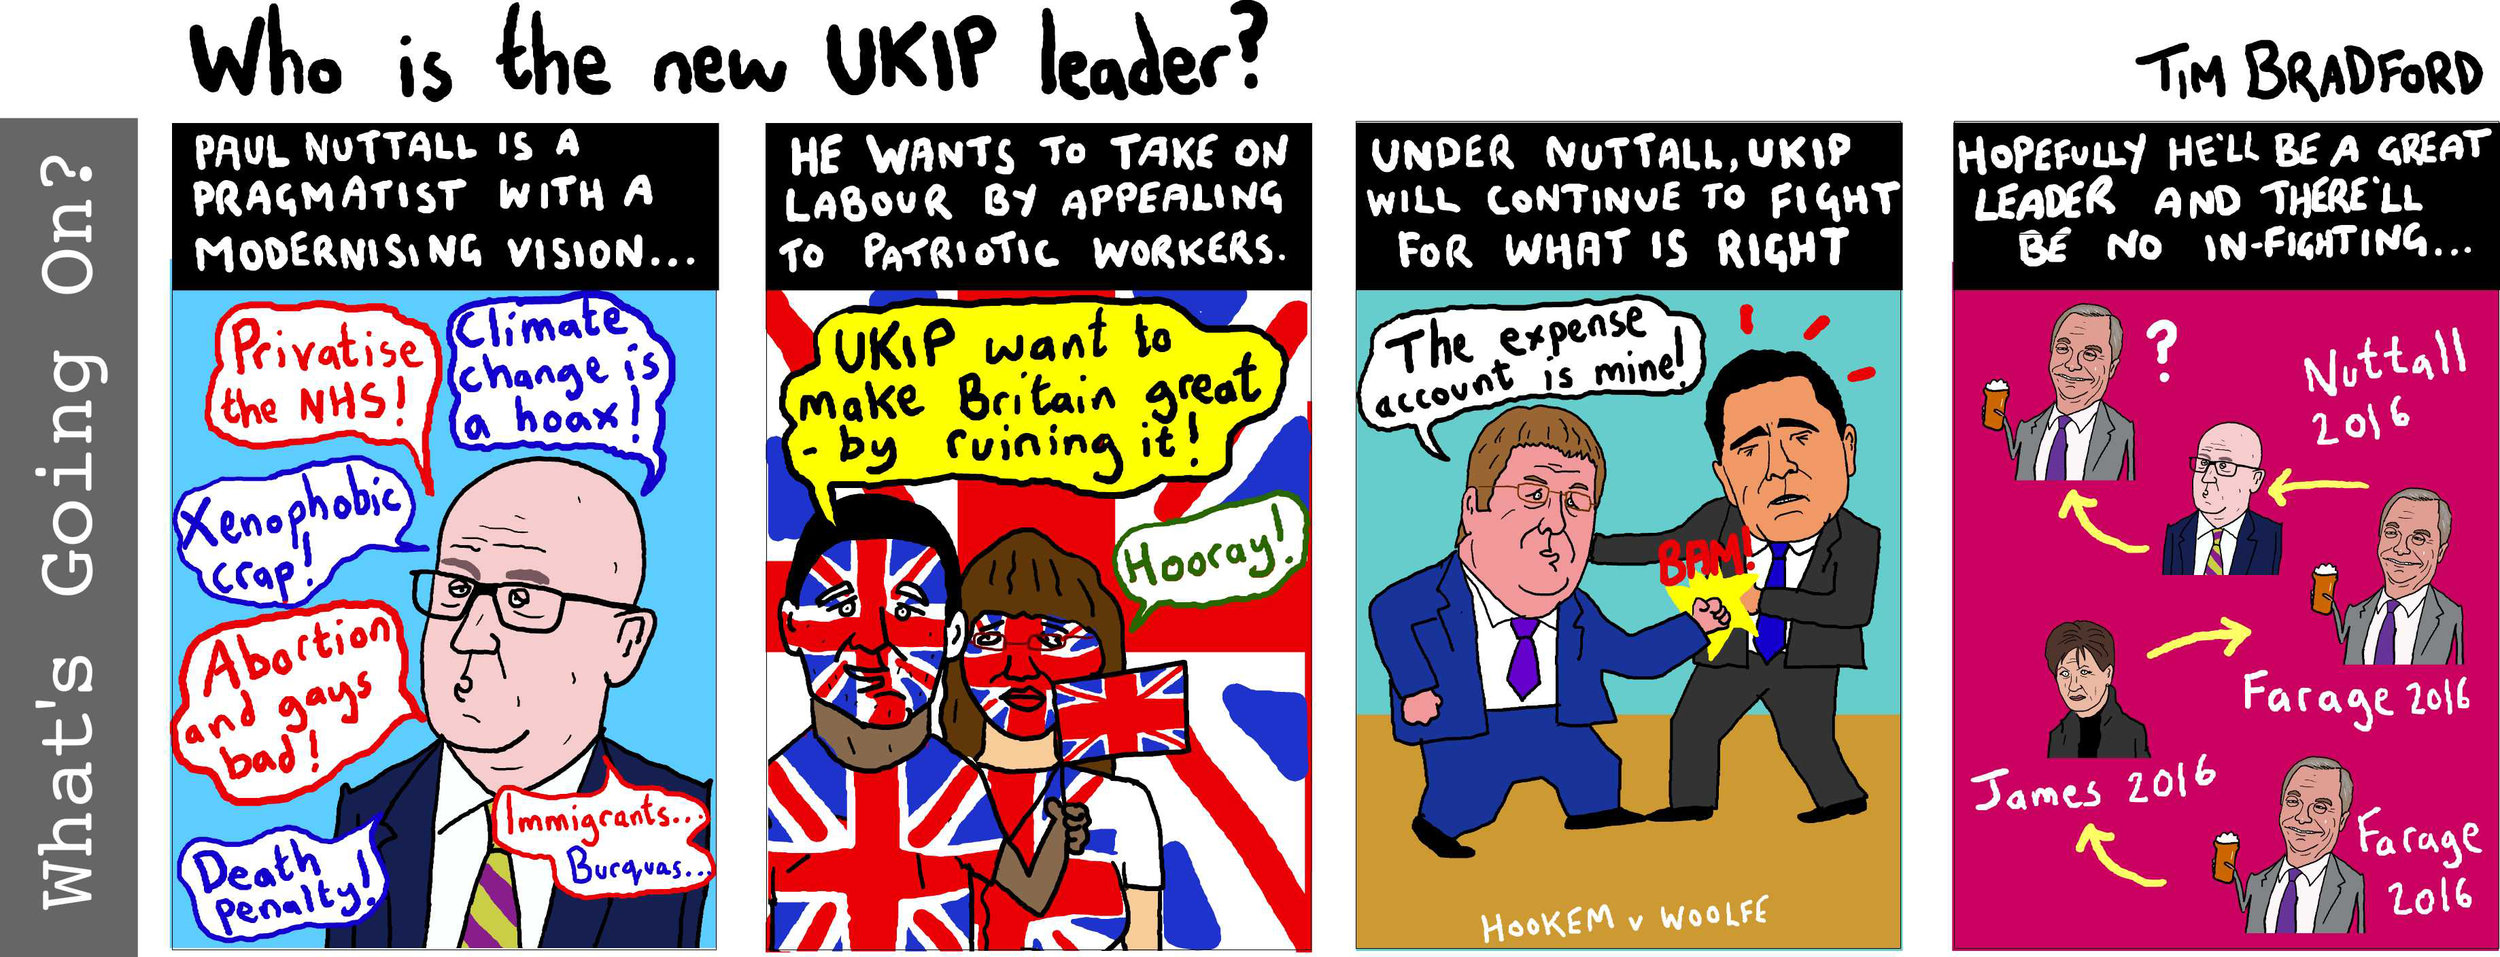 Who is the new UKIP leader? - 02/12/16